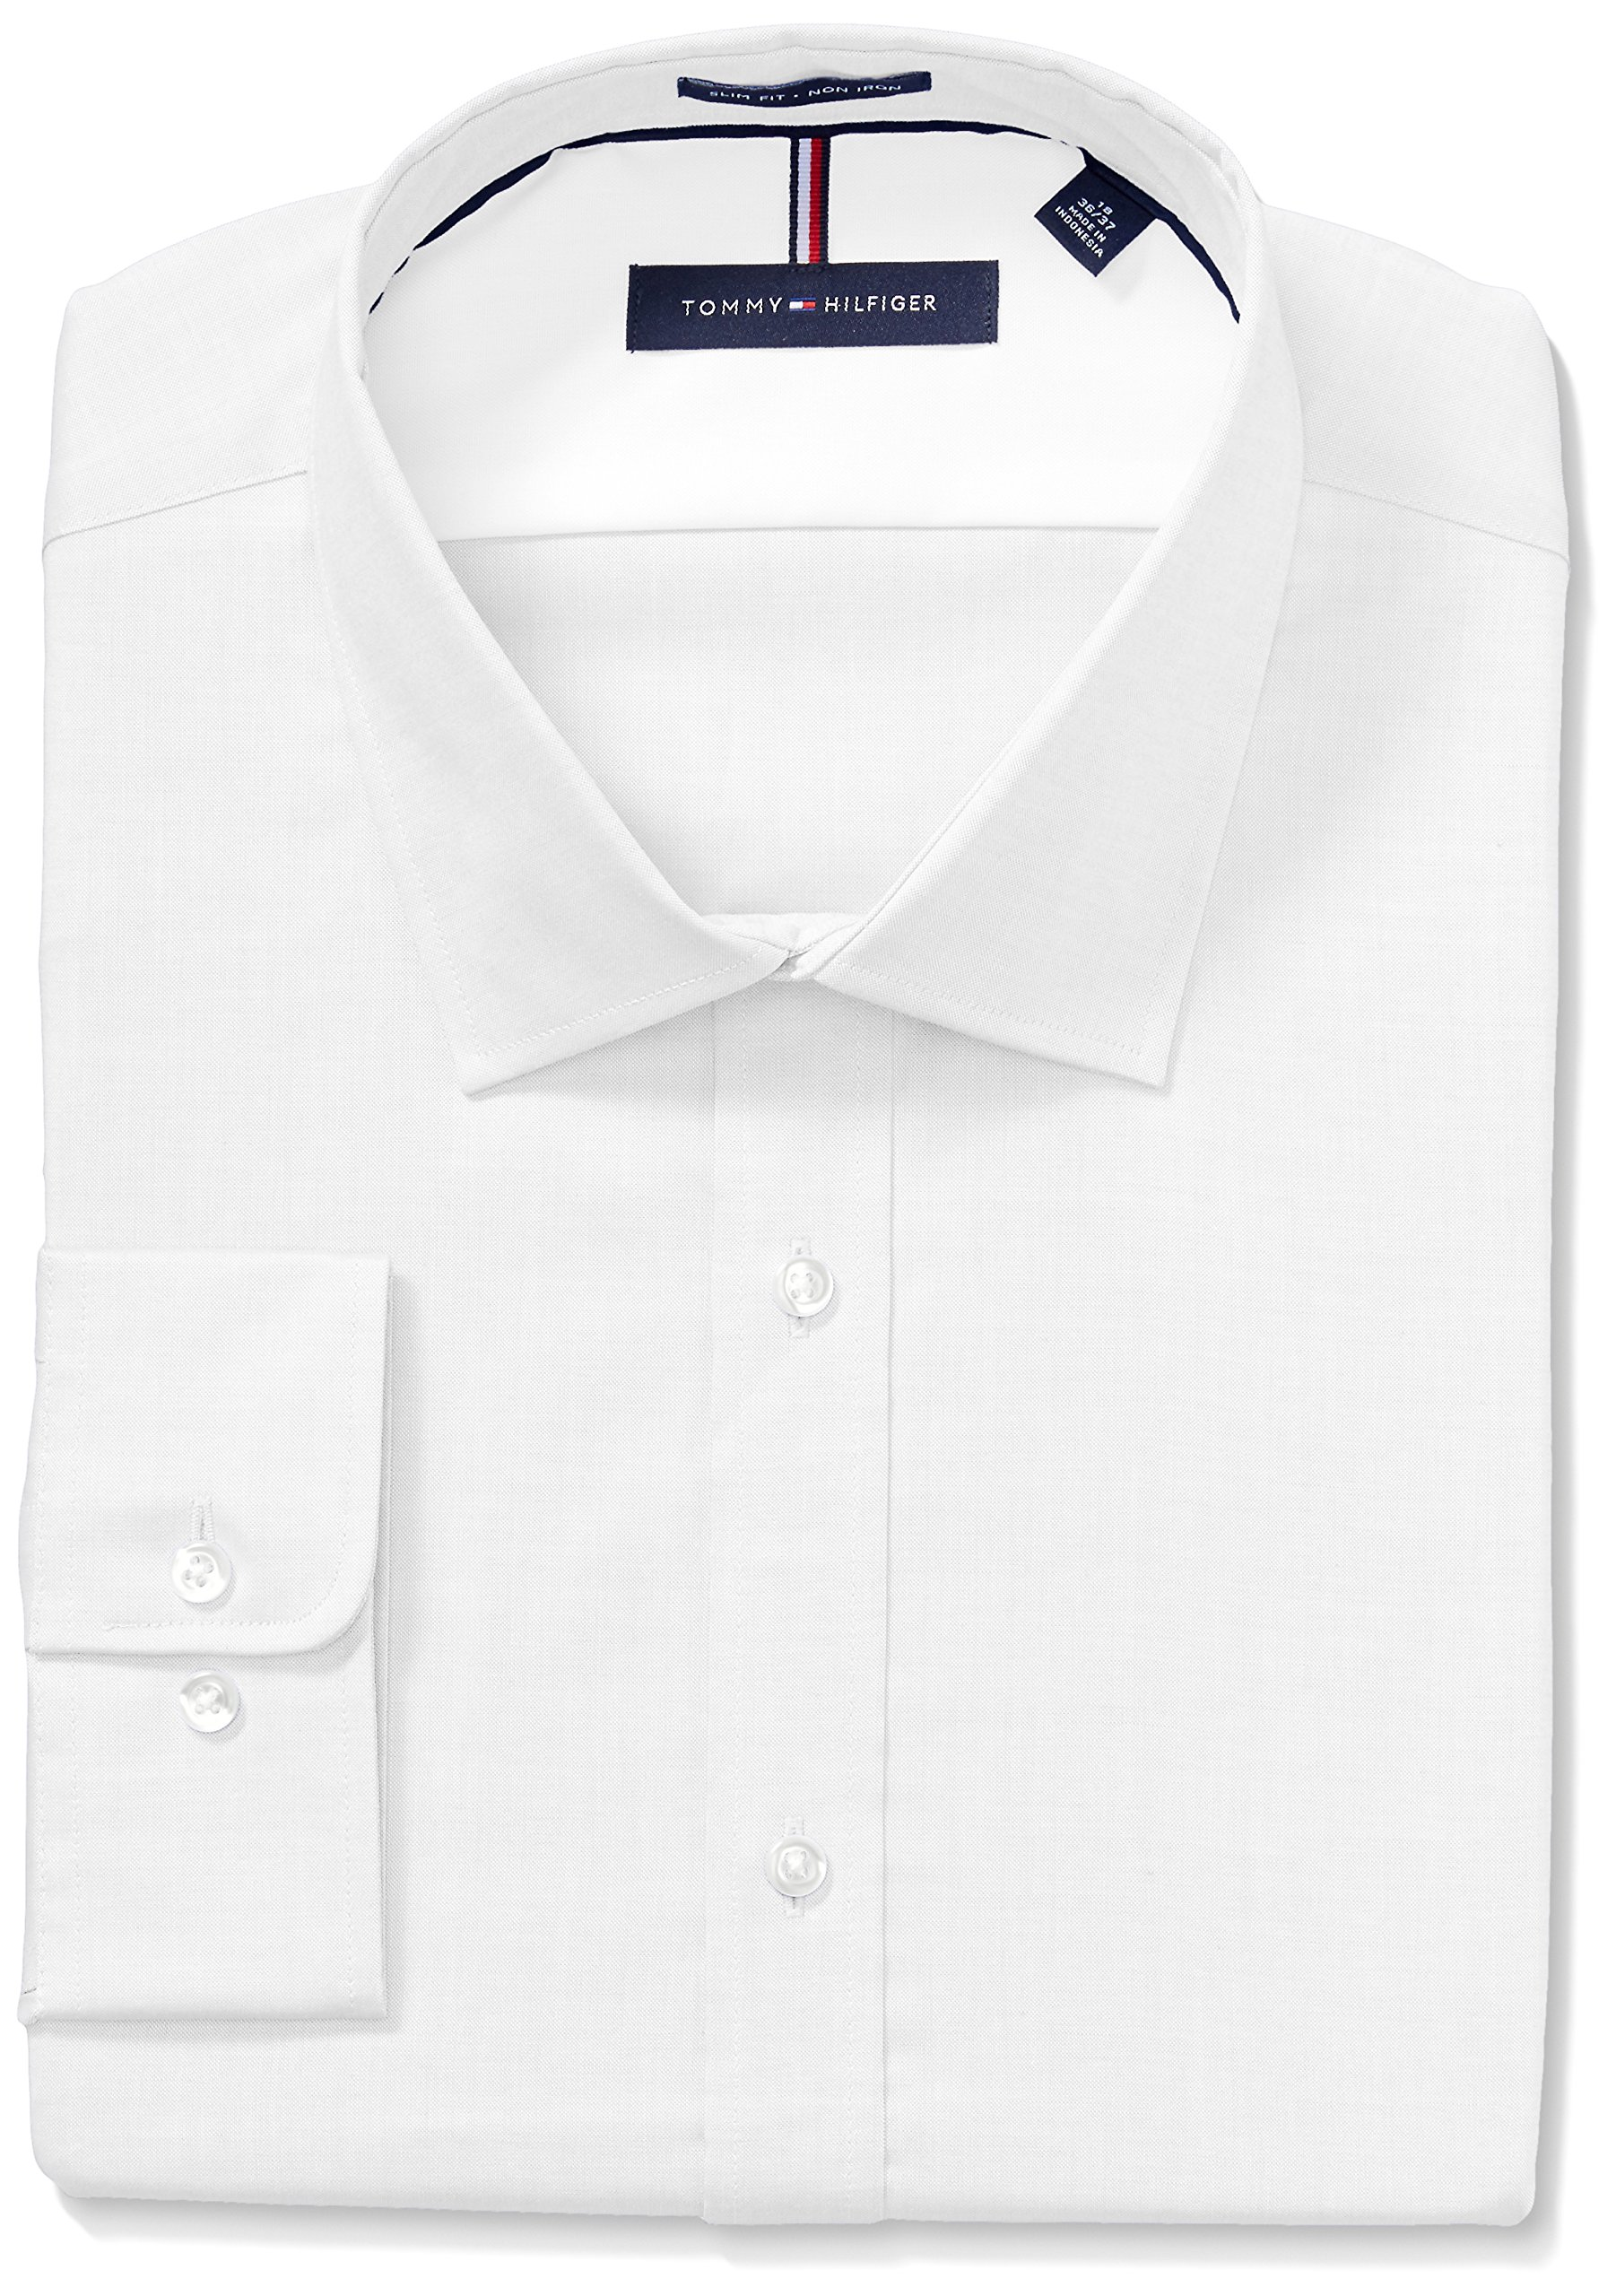 Tommy Hilfiger Men's Non Iron Slim Fit Solid Spread Collar Dress Shirt, White, 17.5'' Neck 36''-37'' Sleeve